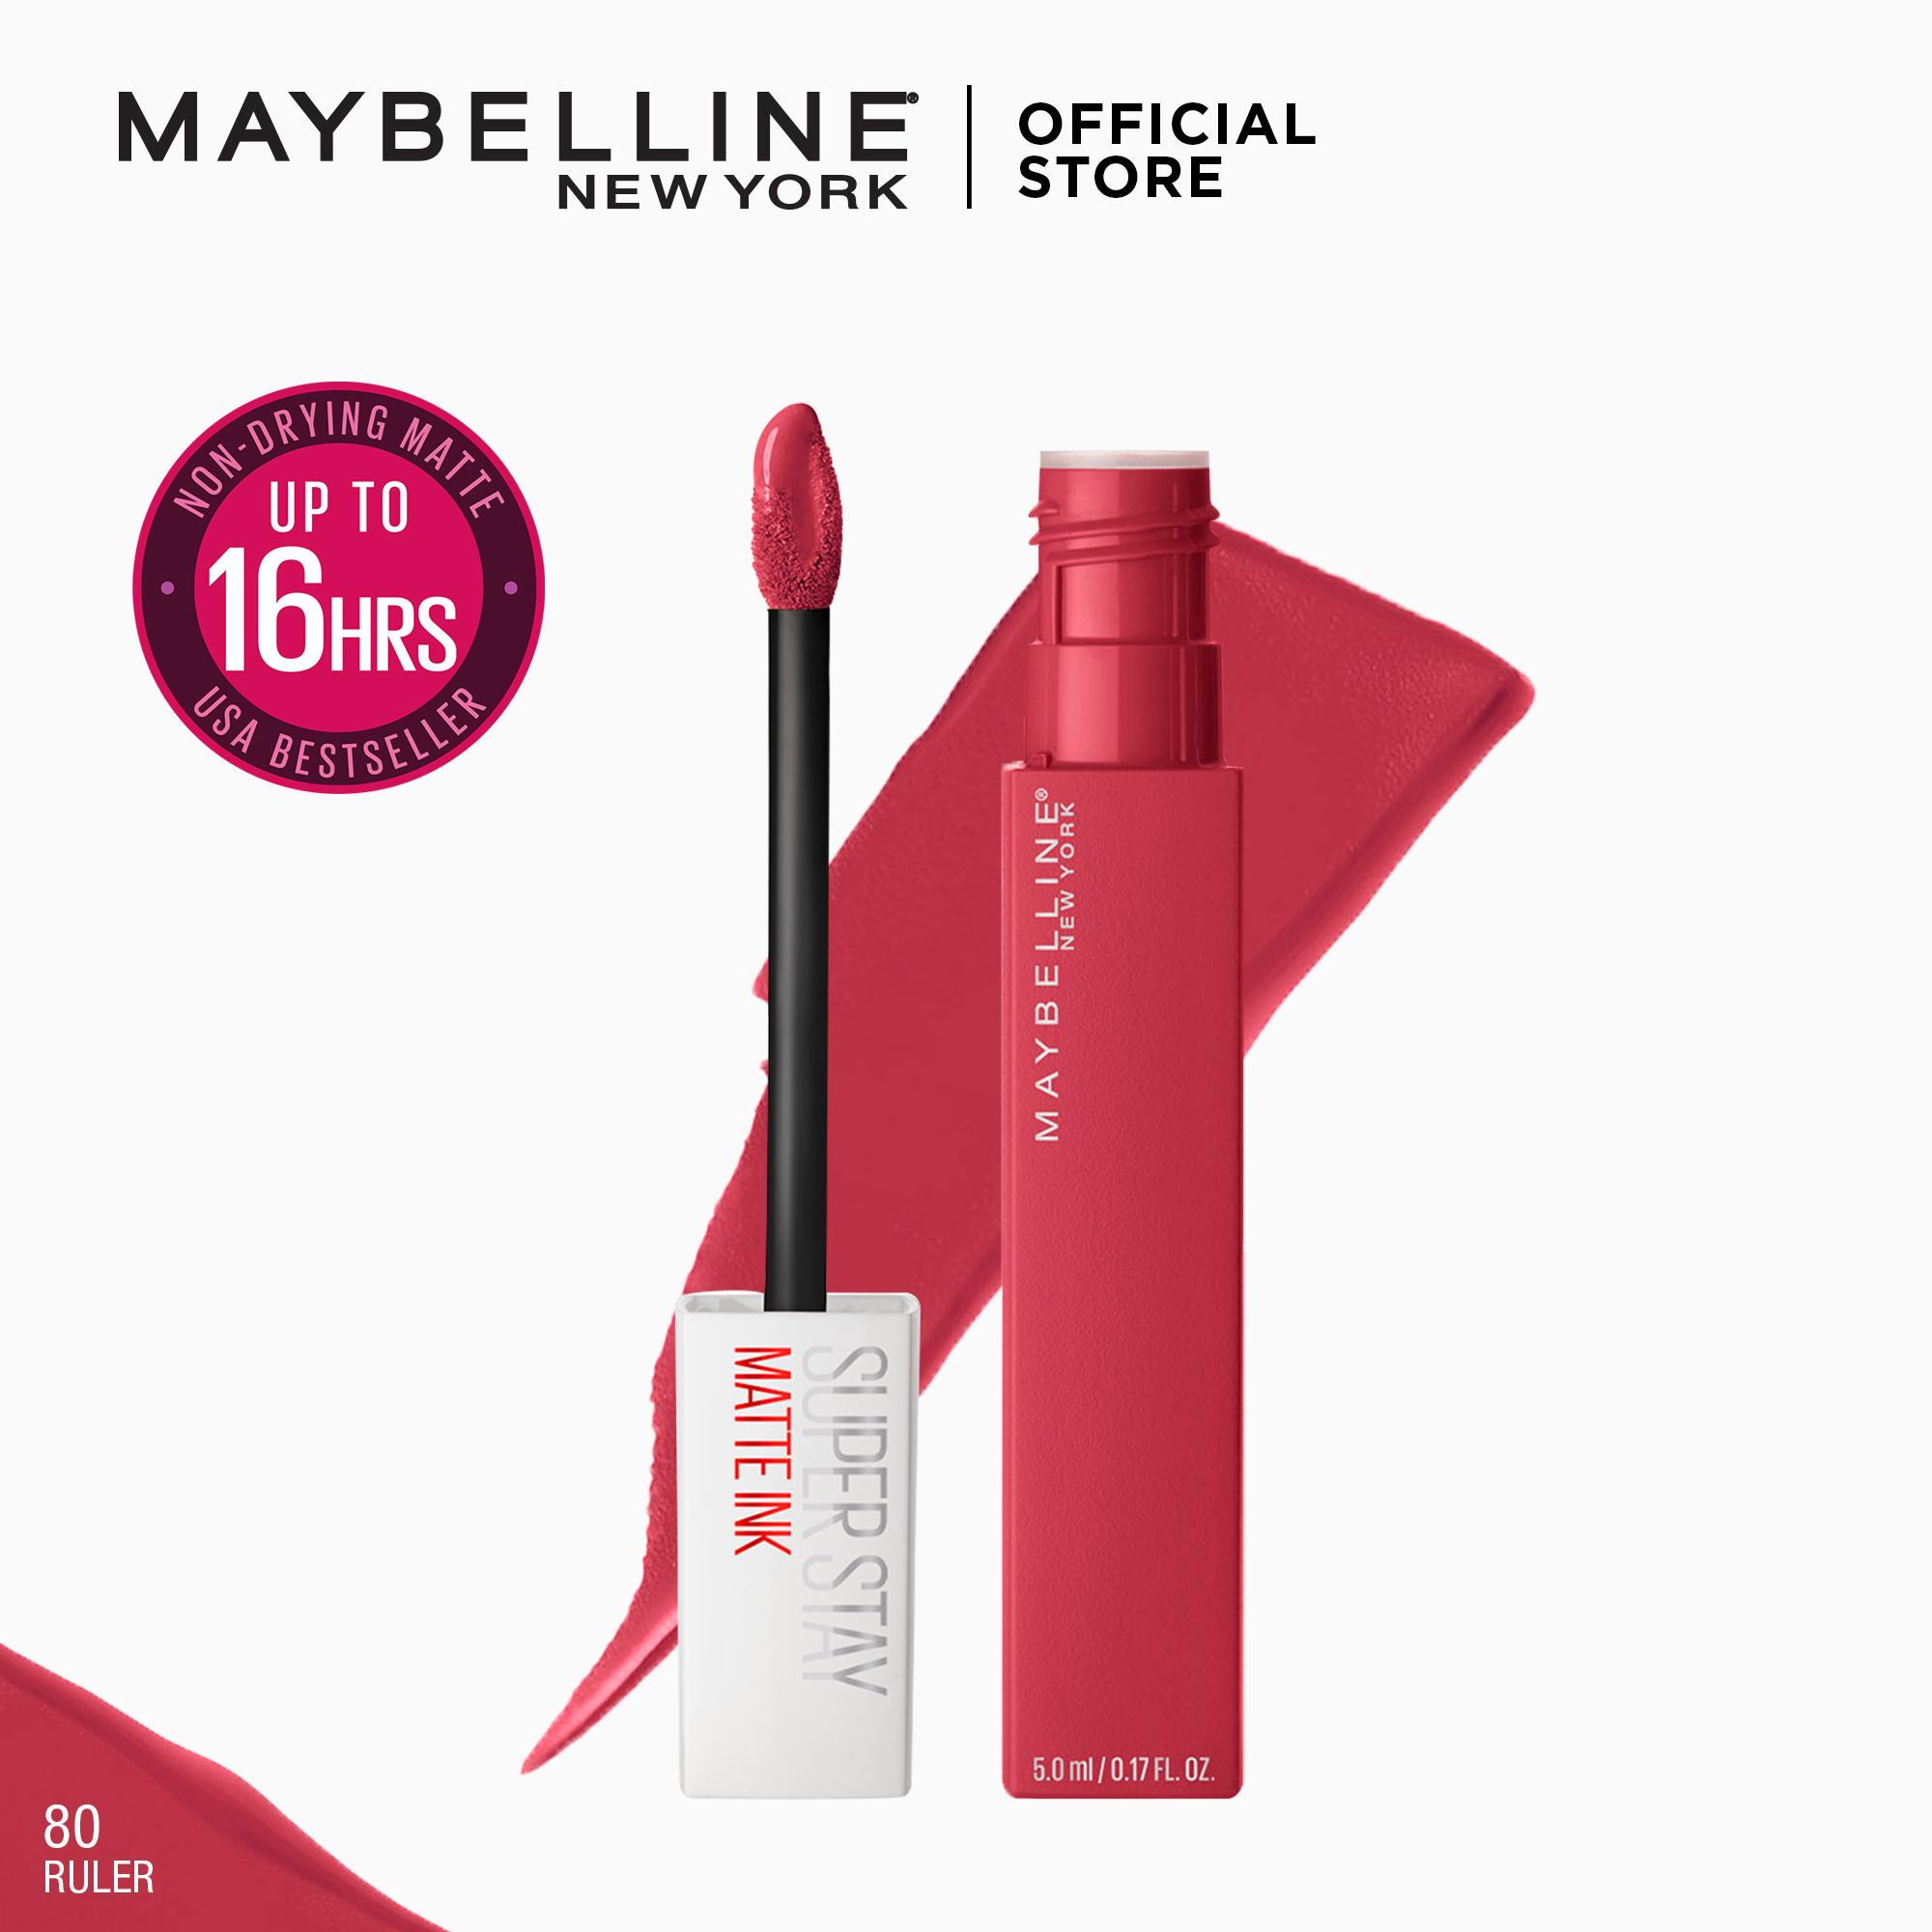 SuperStay Matte Ink Unnude Liquid Lipstick [16HR Waterproof] by Maybelline